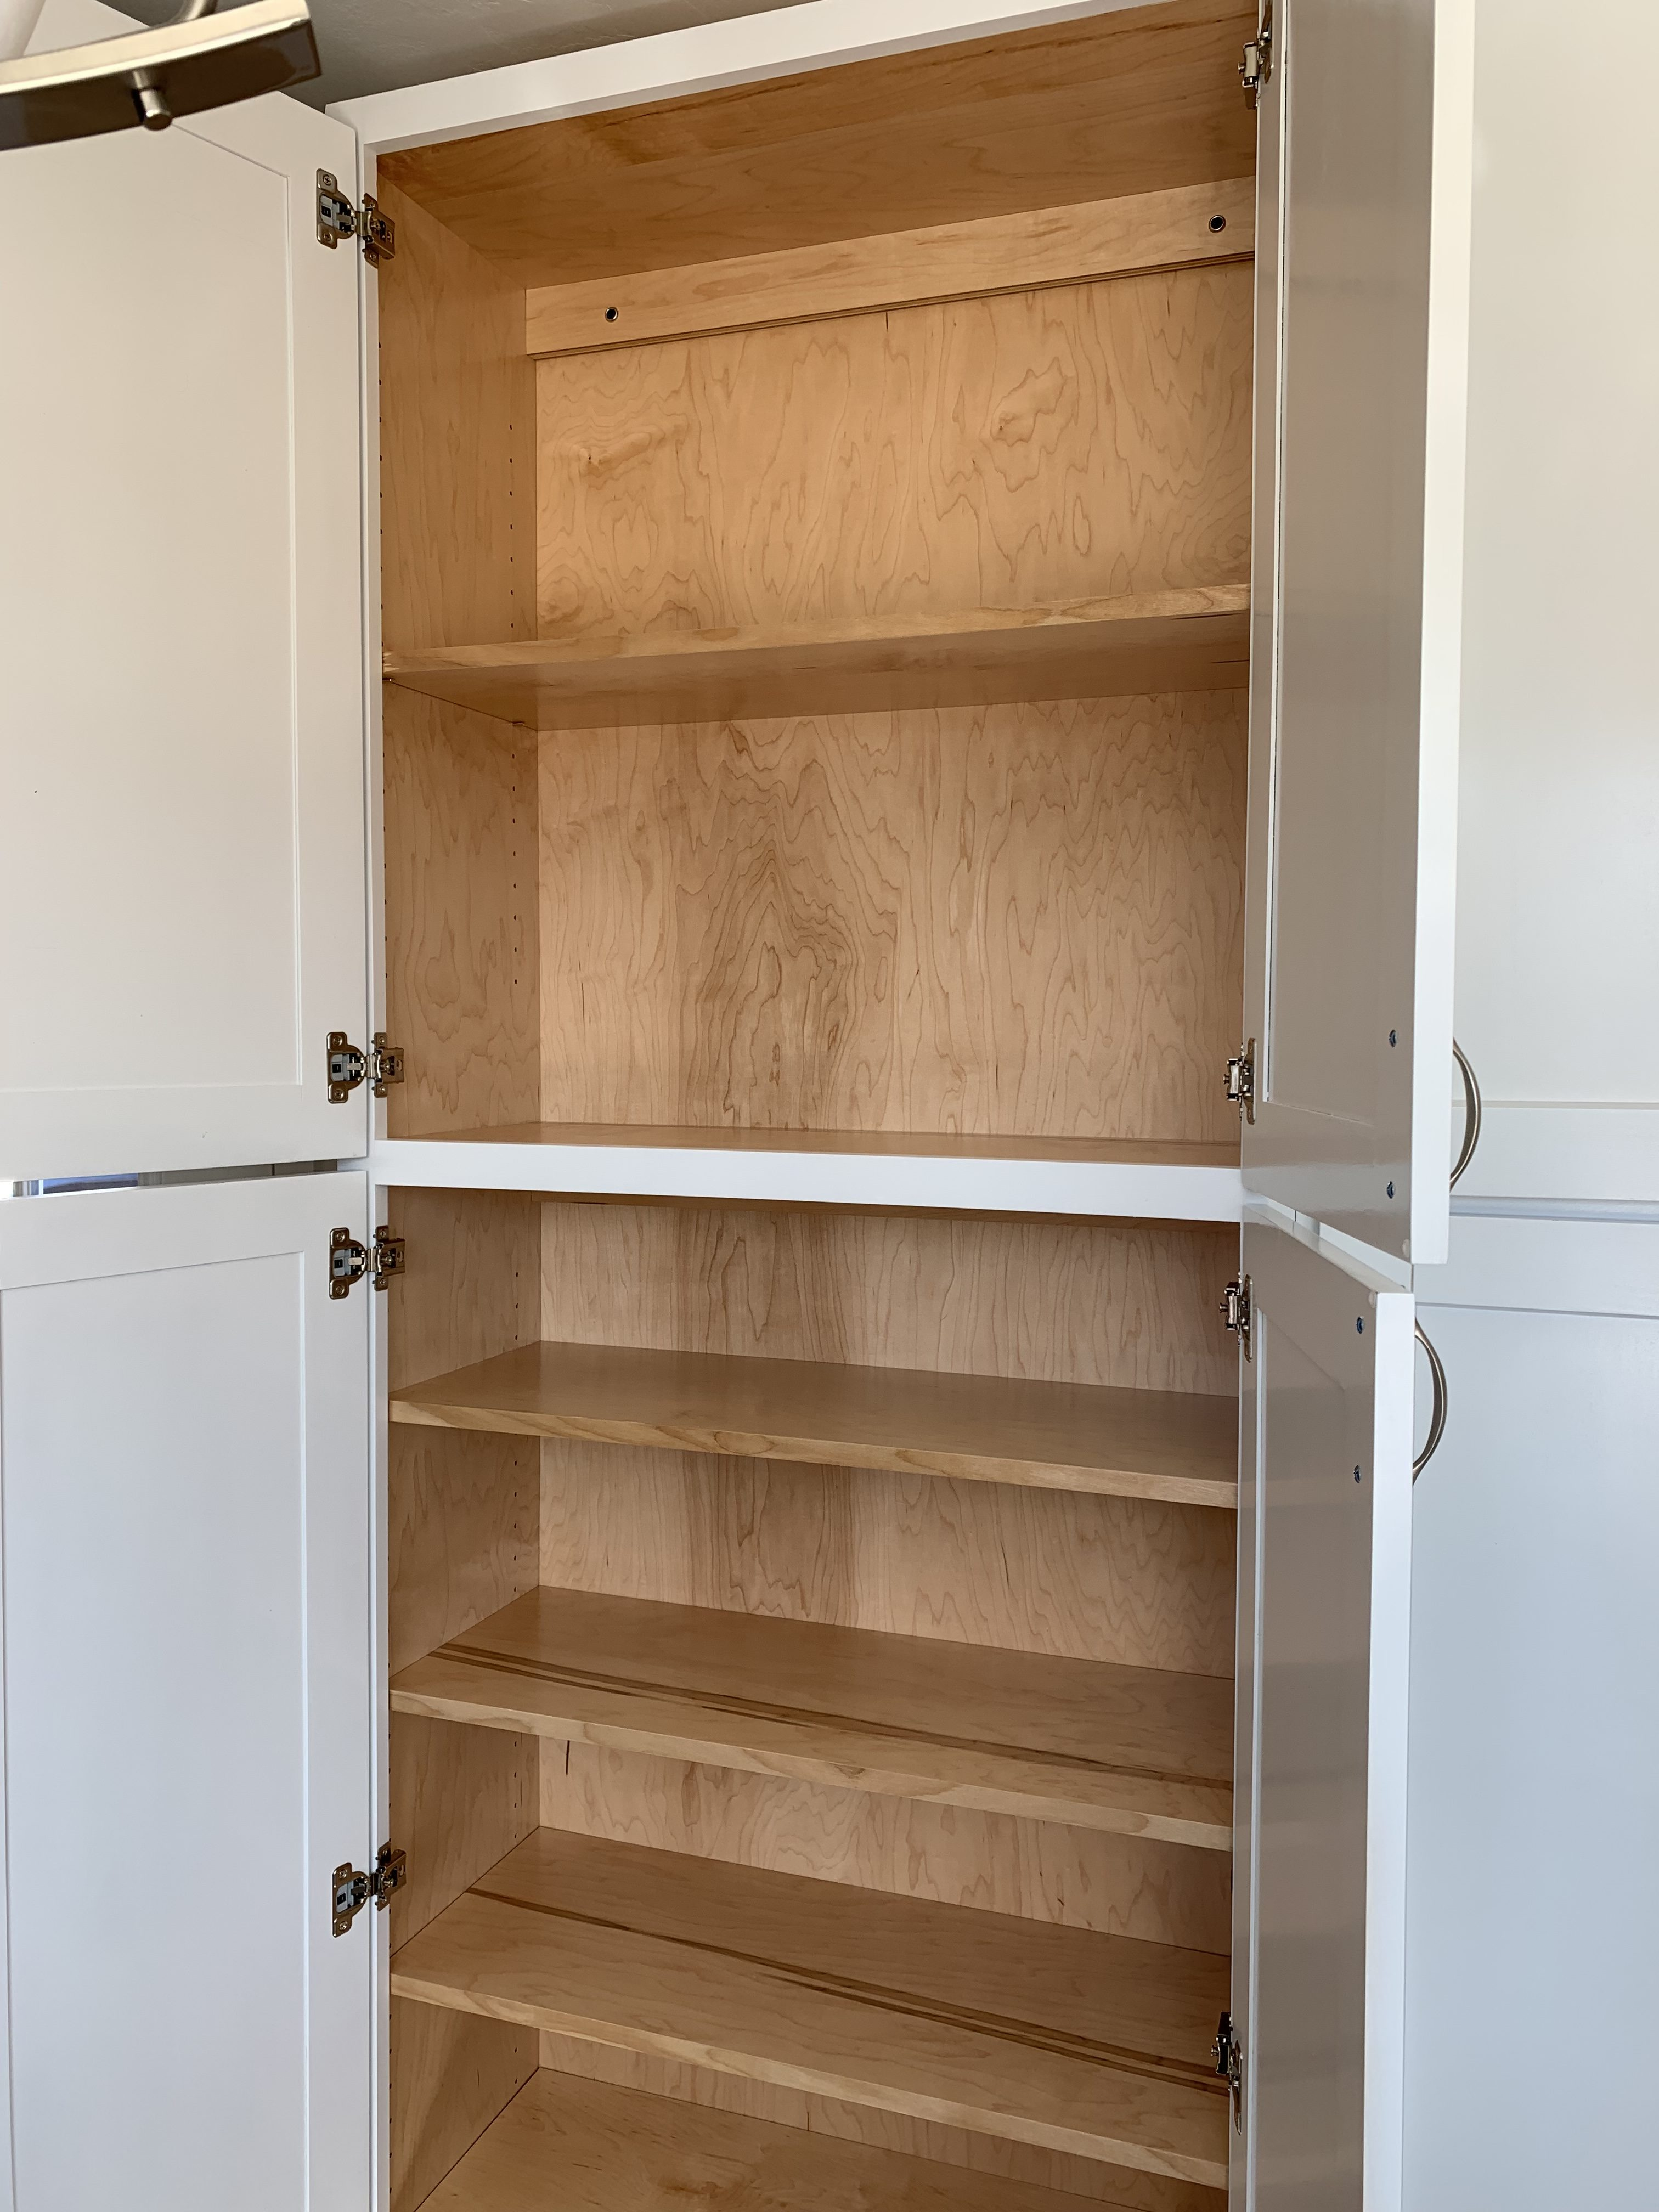 Arter Pantry Cabinets 2